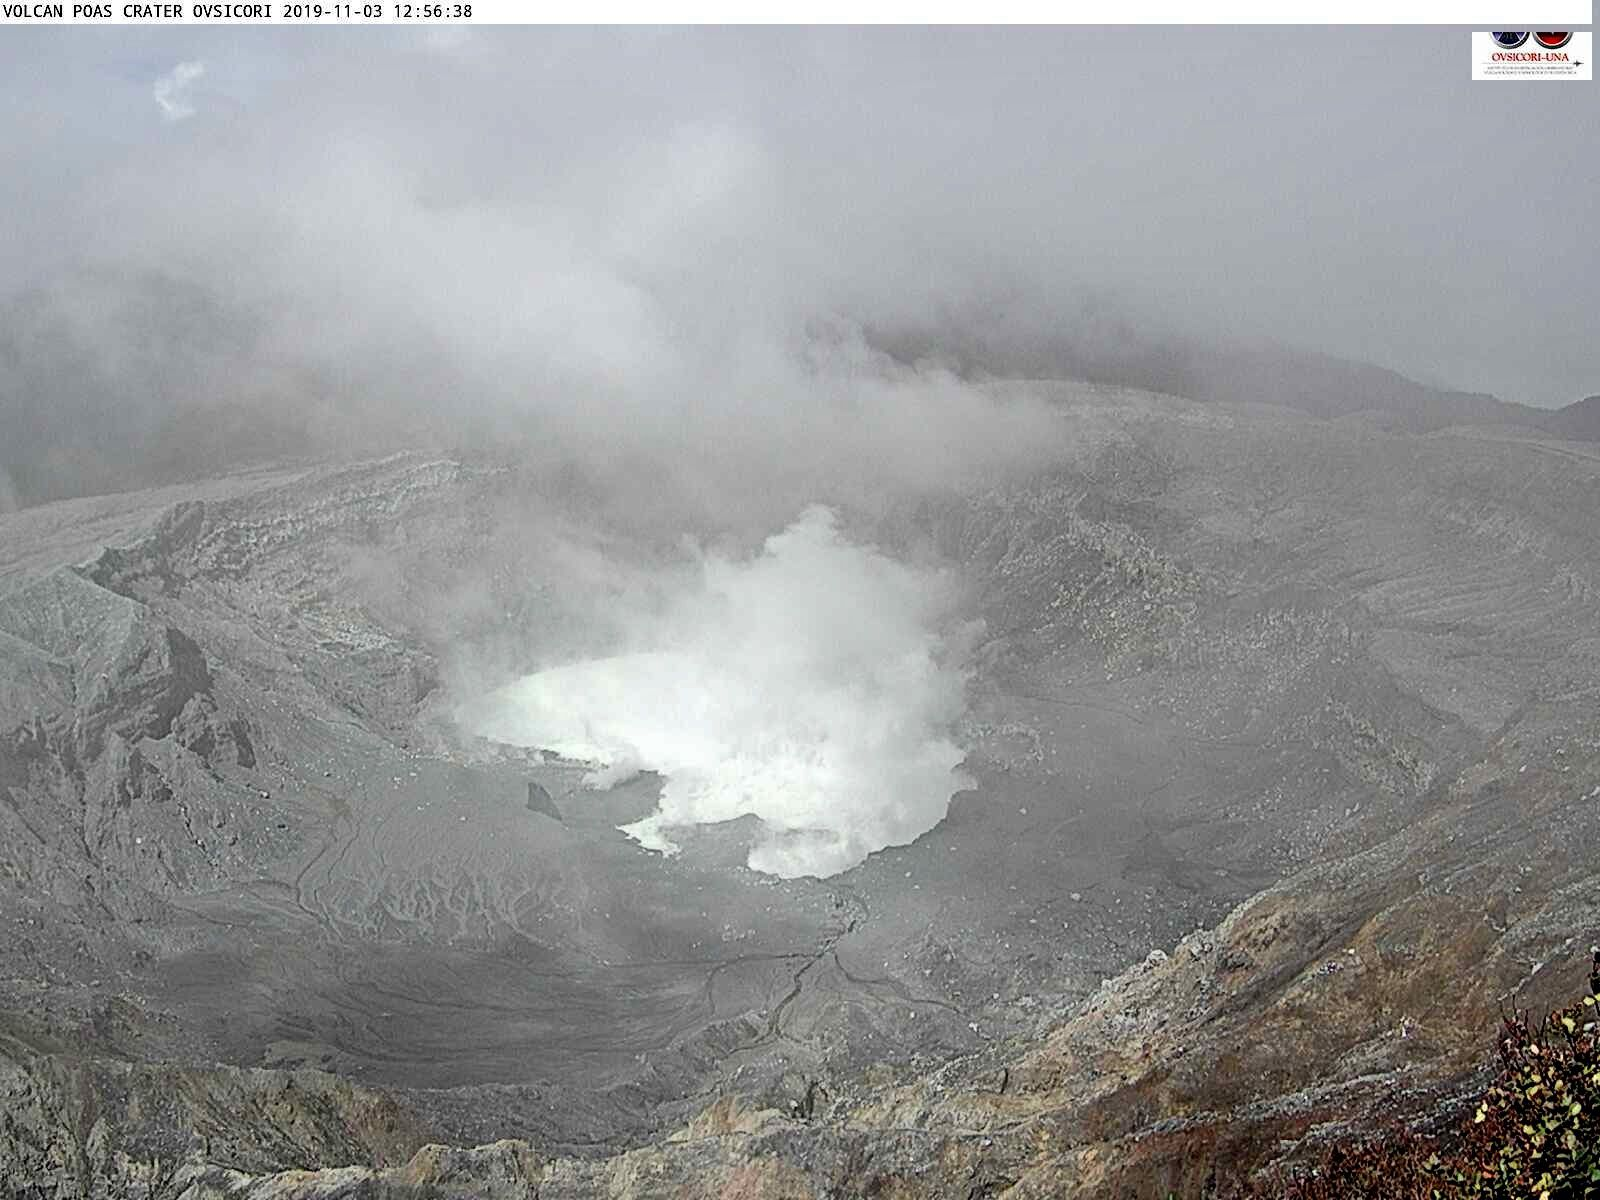 Poas - 03.11.2019 / 12h56 - the lake fills up gradually, with a decrease of fumaroles - bad visibility due to bad weather - webcam Ovsicori